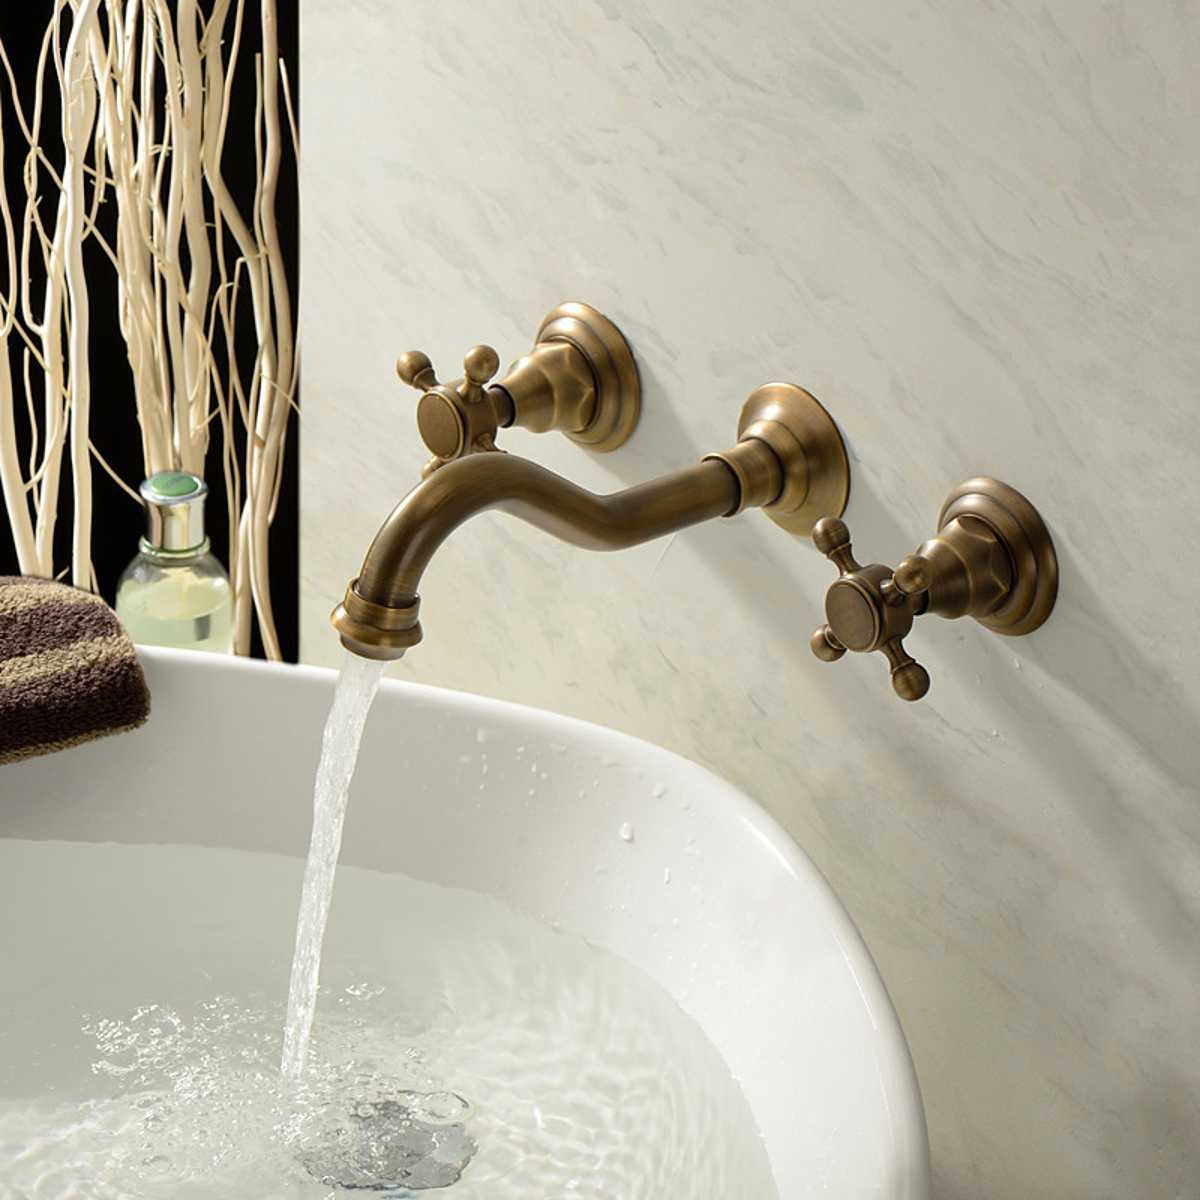 Vintage Brass Modern Style Wall Mounted Bathtub Faucet Tap Set Basin Cold Hot Double Control Round Bath Bathroom Shower Faucet